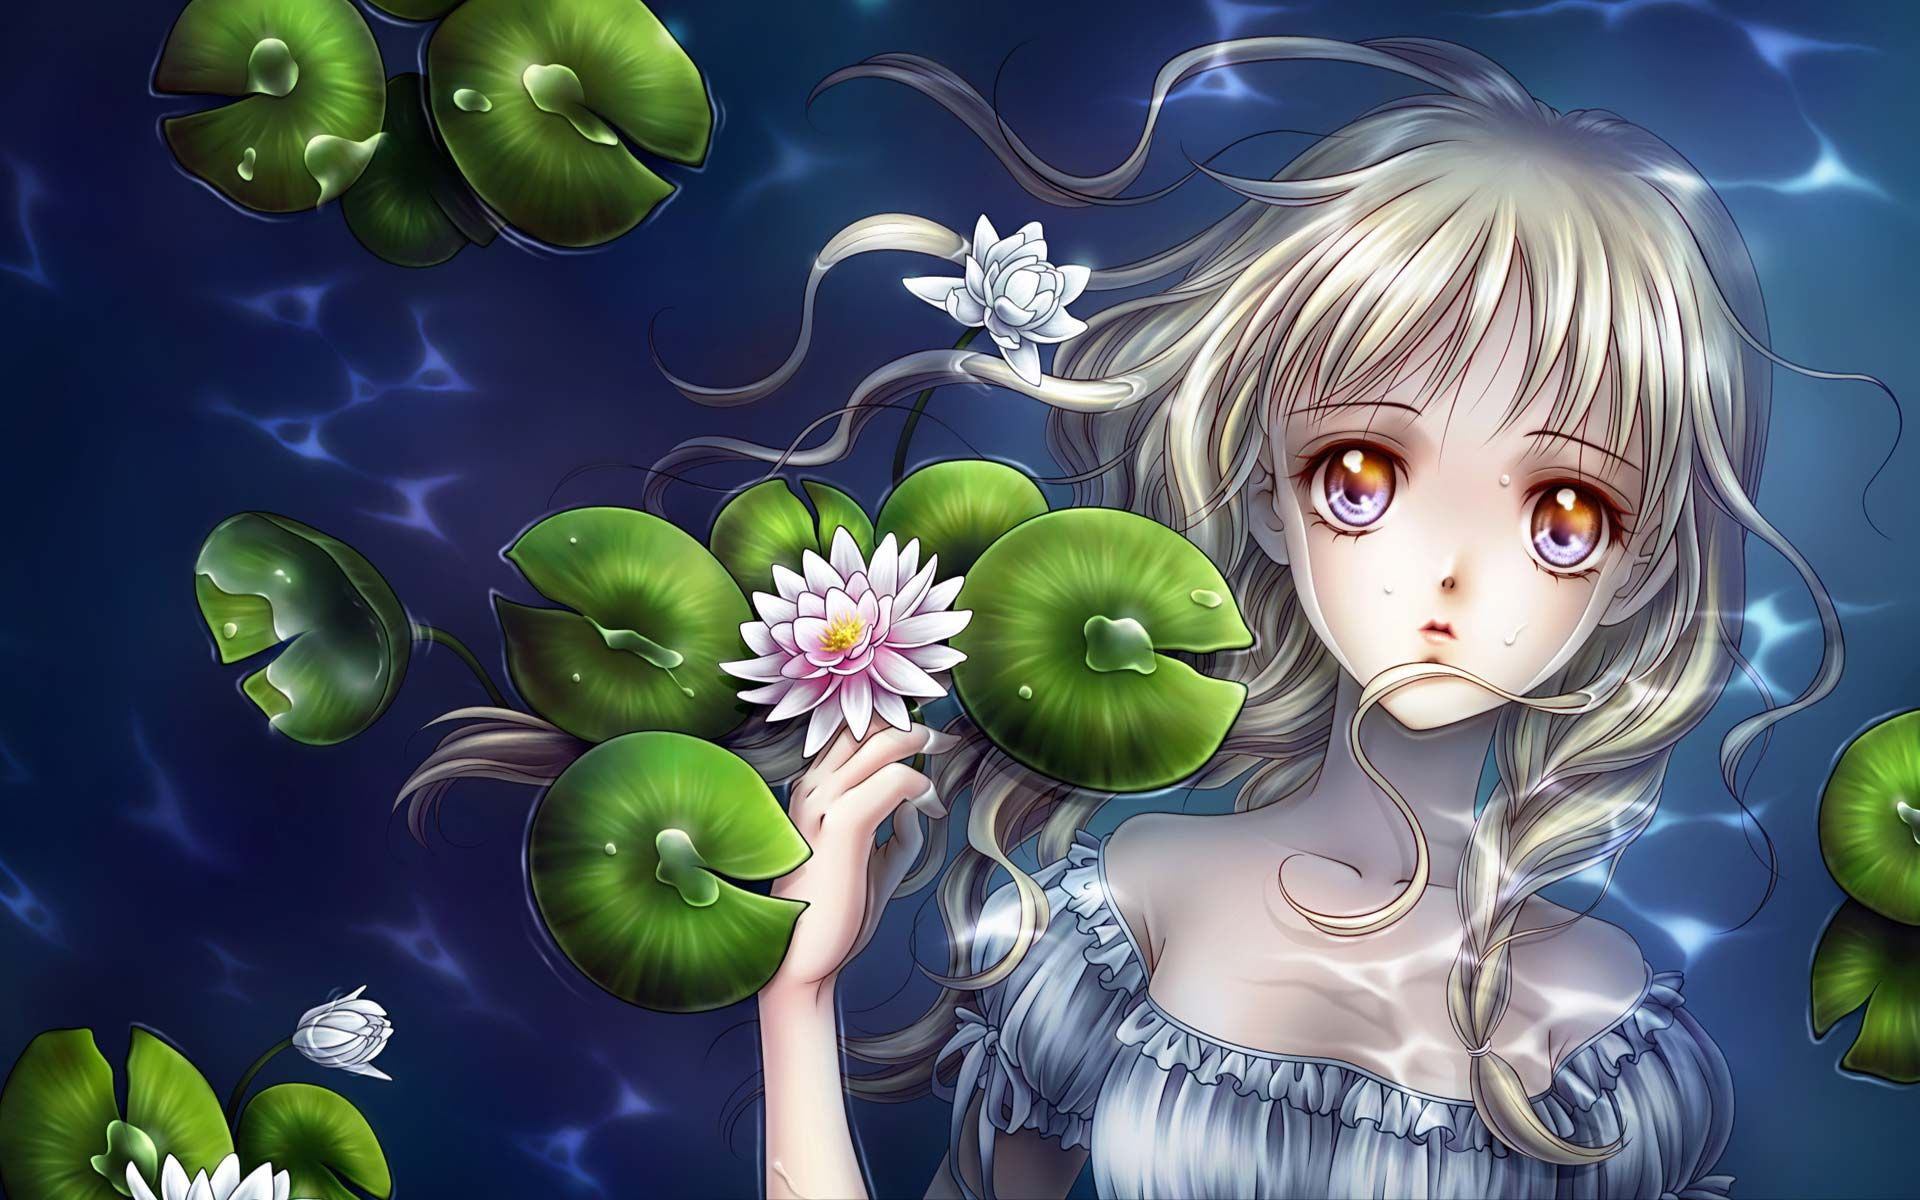 Great Anime Wallpapers Anime Paisajes Anime